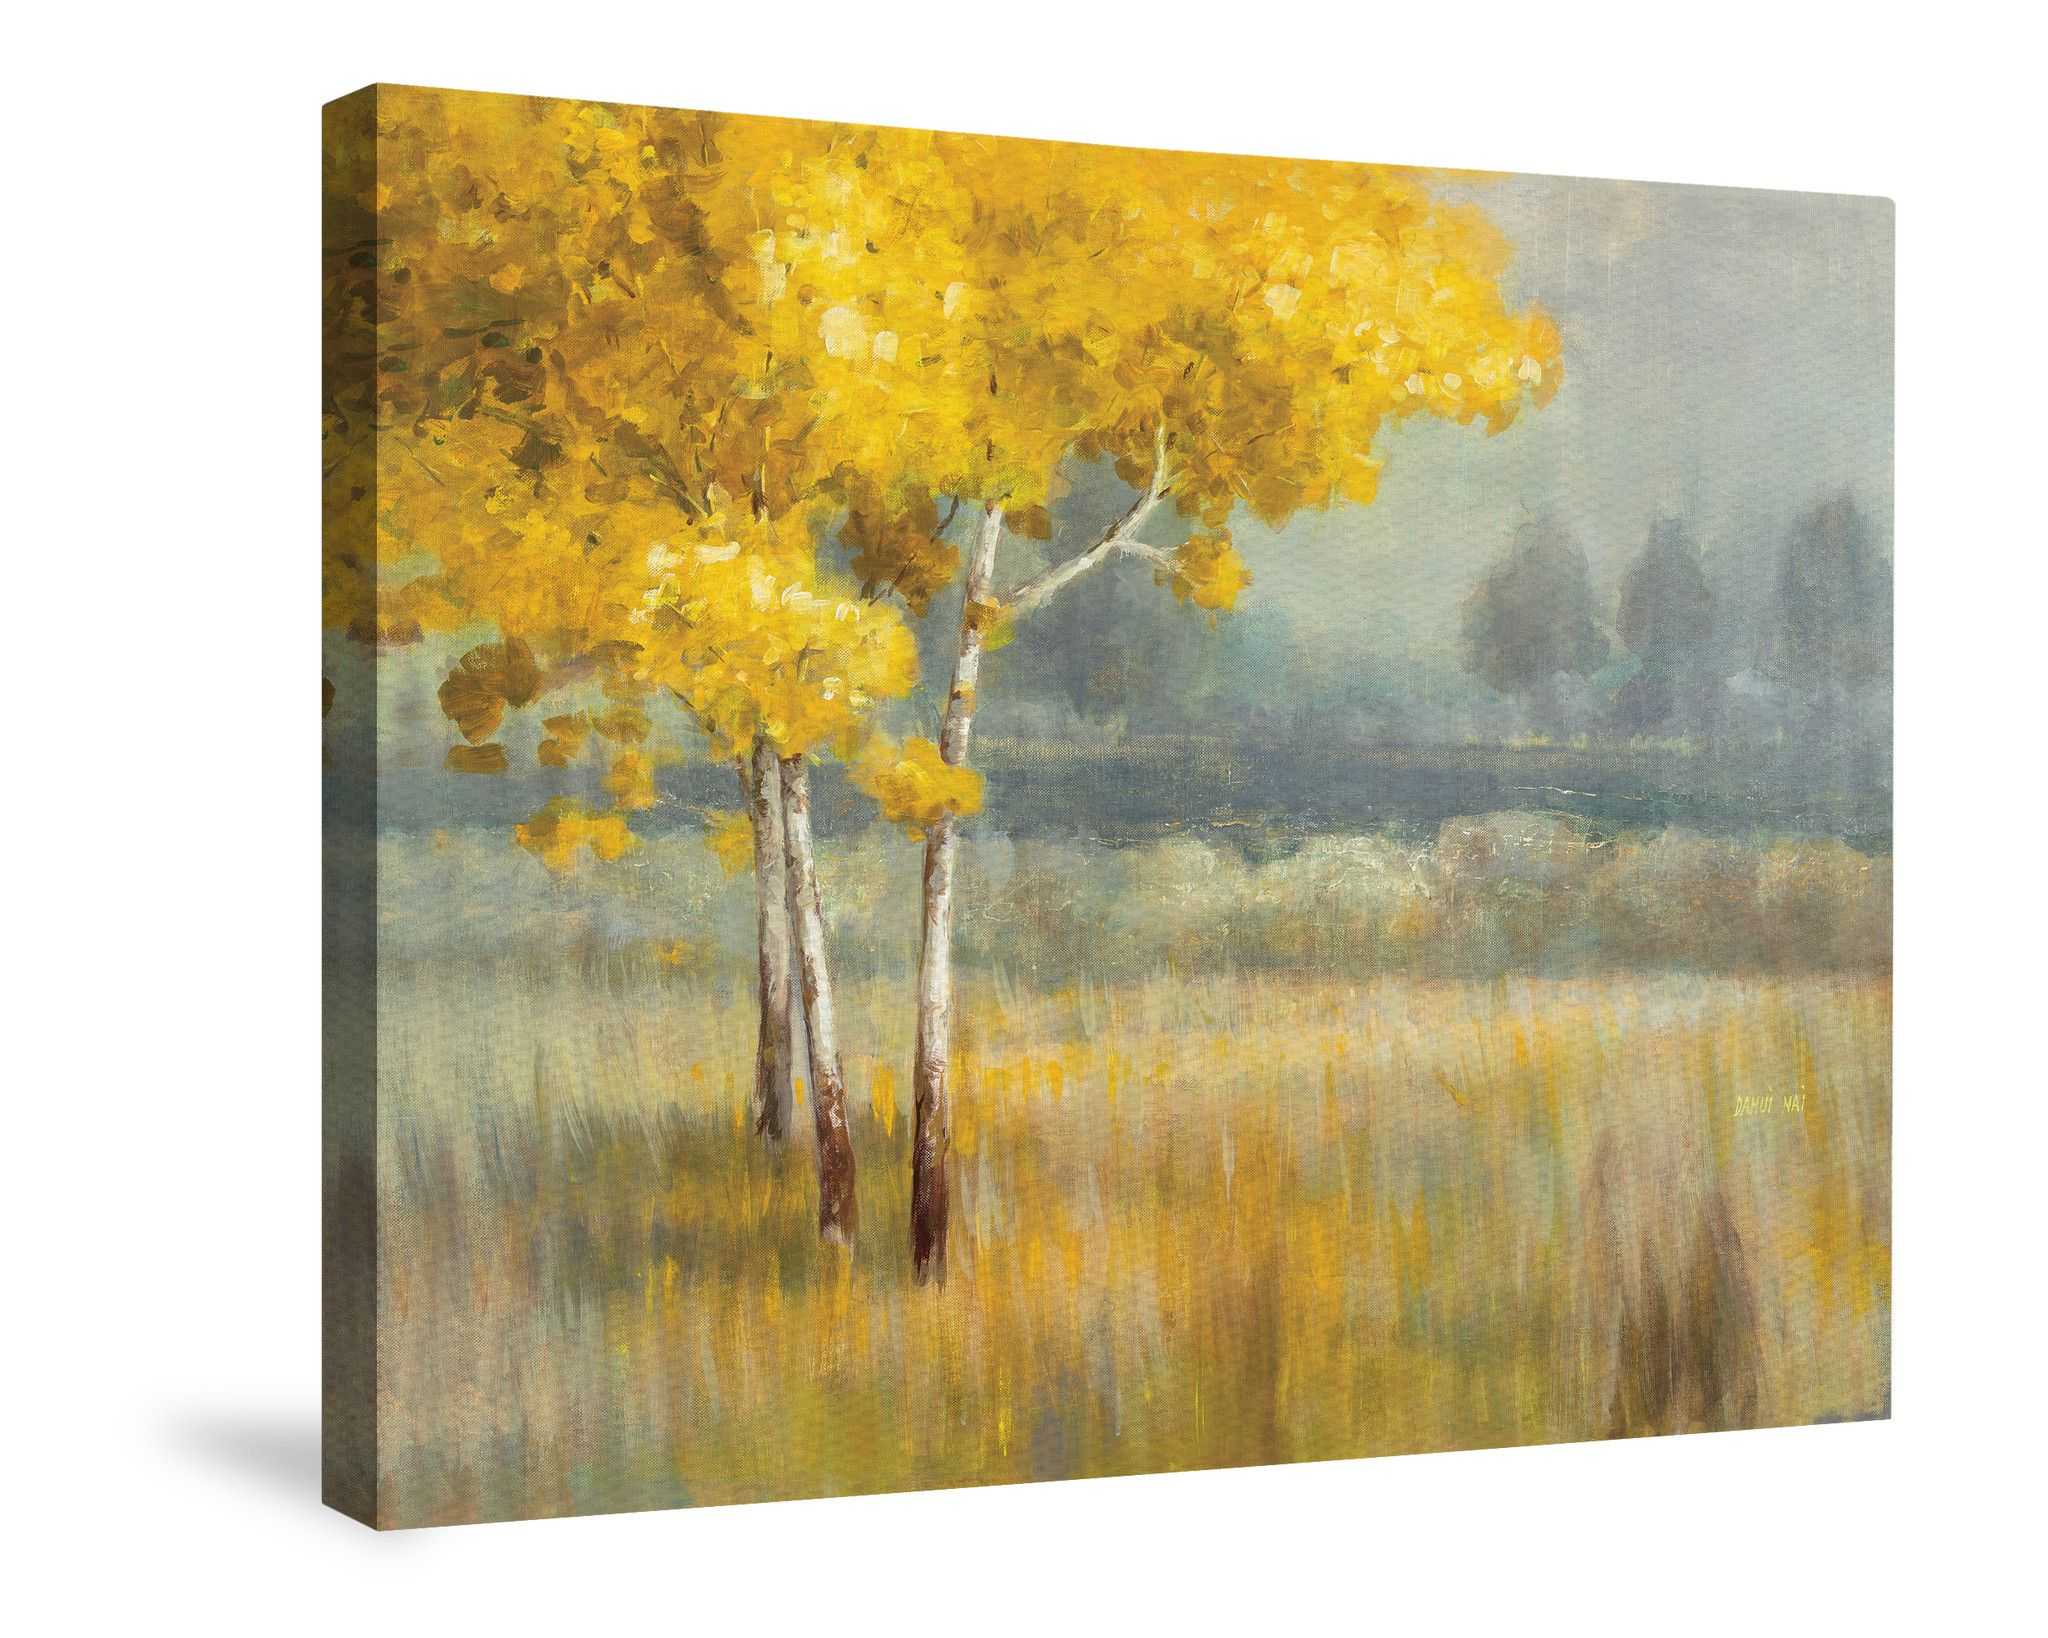 Yellow Landscape Canvas Wall Art | Primary color yellow. #1 ...